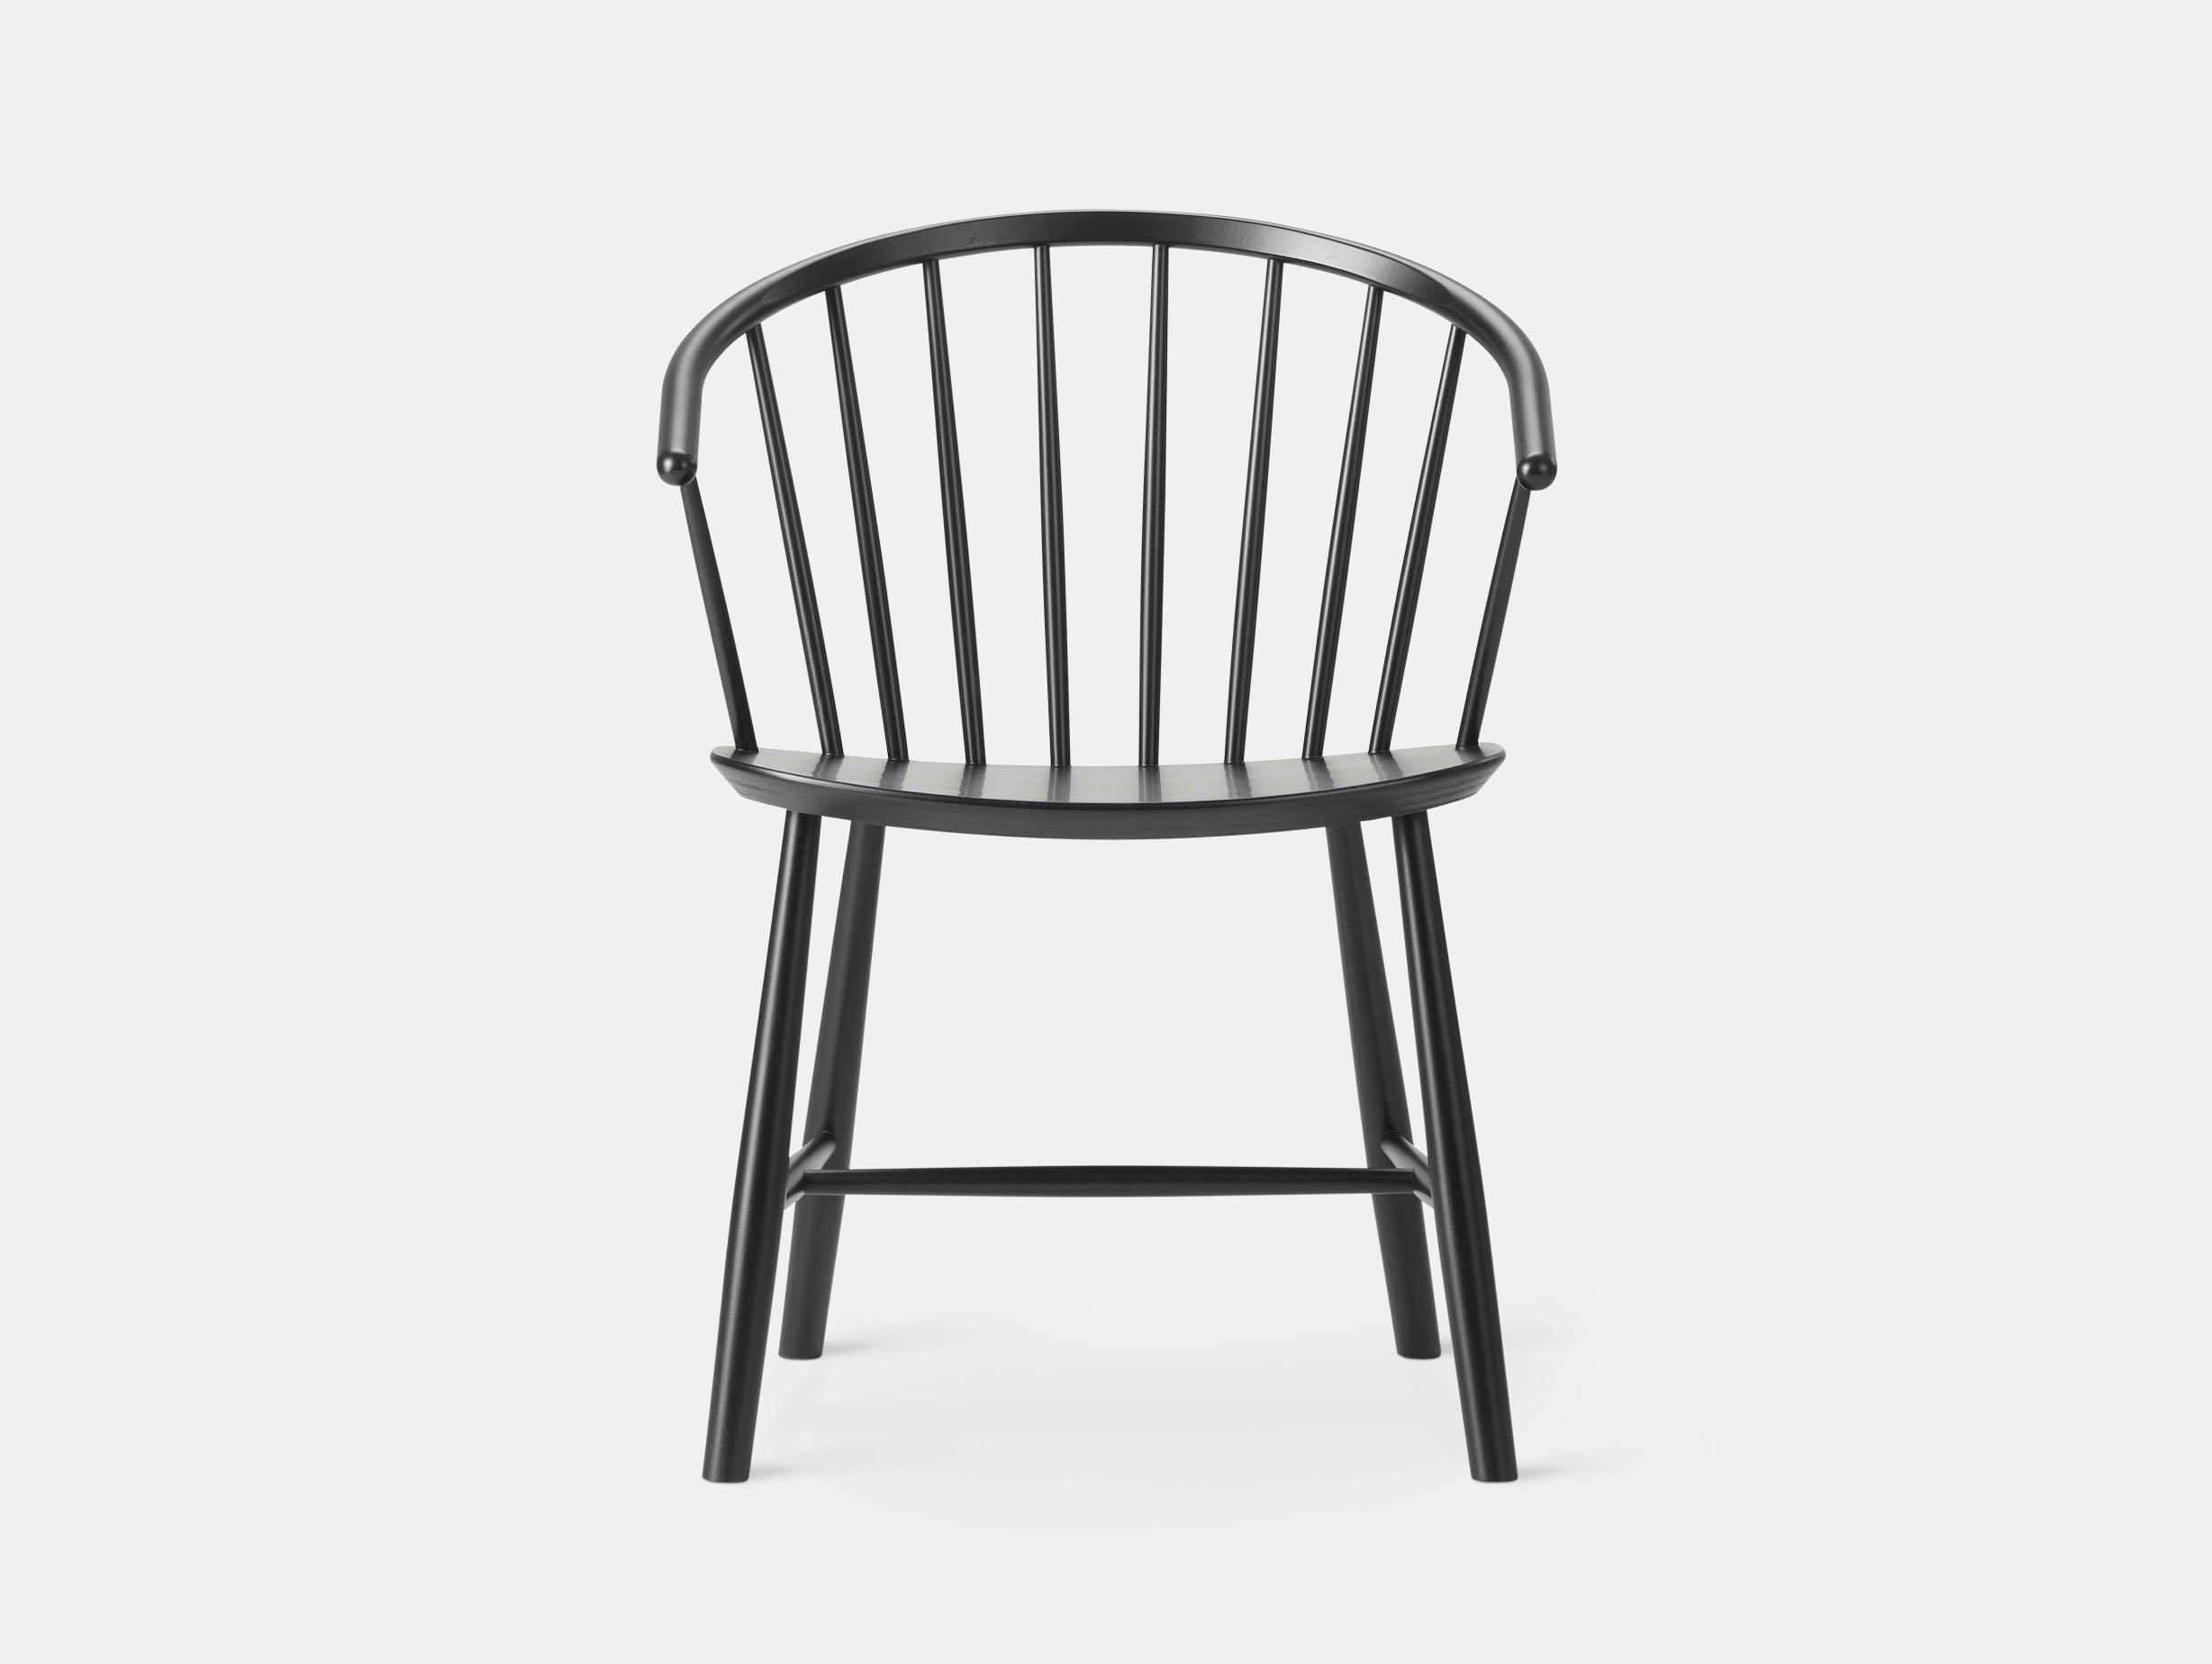 Johansson J64 Chair image